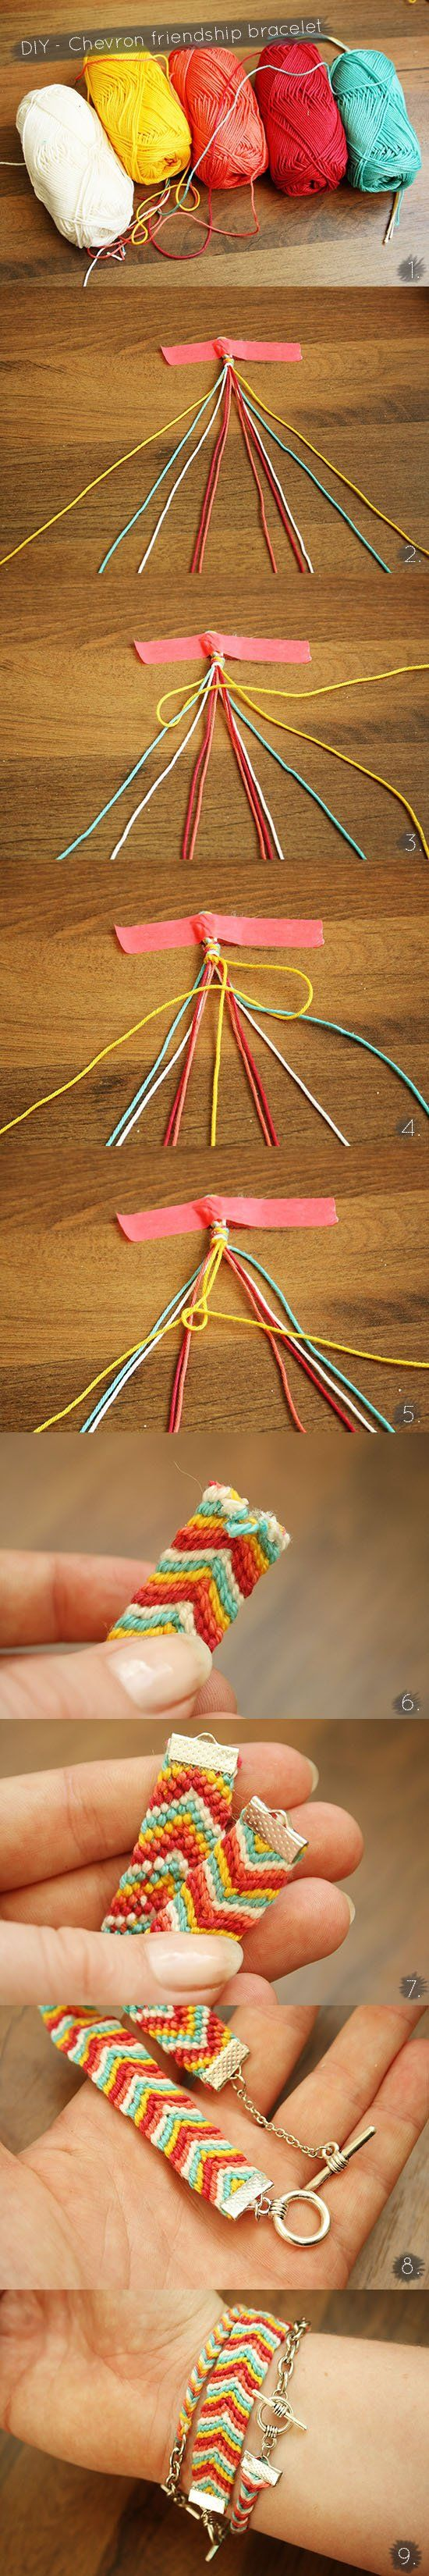 DIY Dress Up Station From Old Entertainment Center